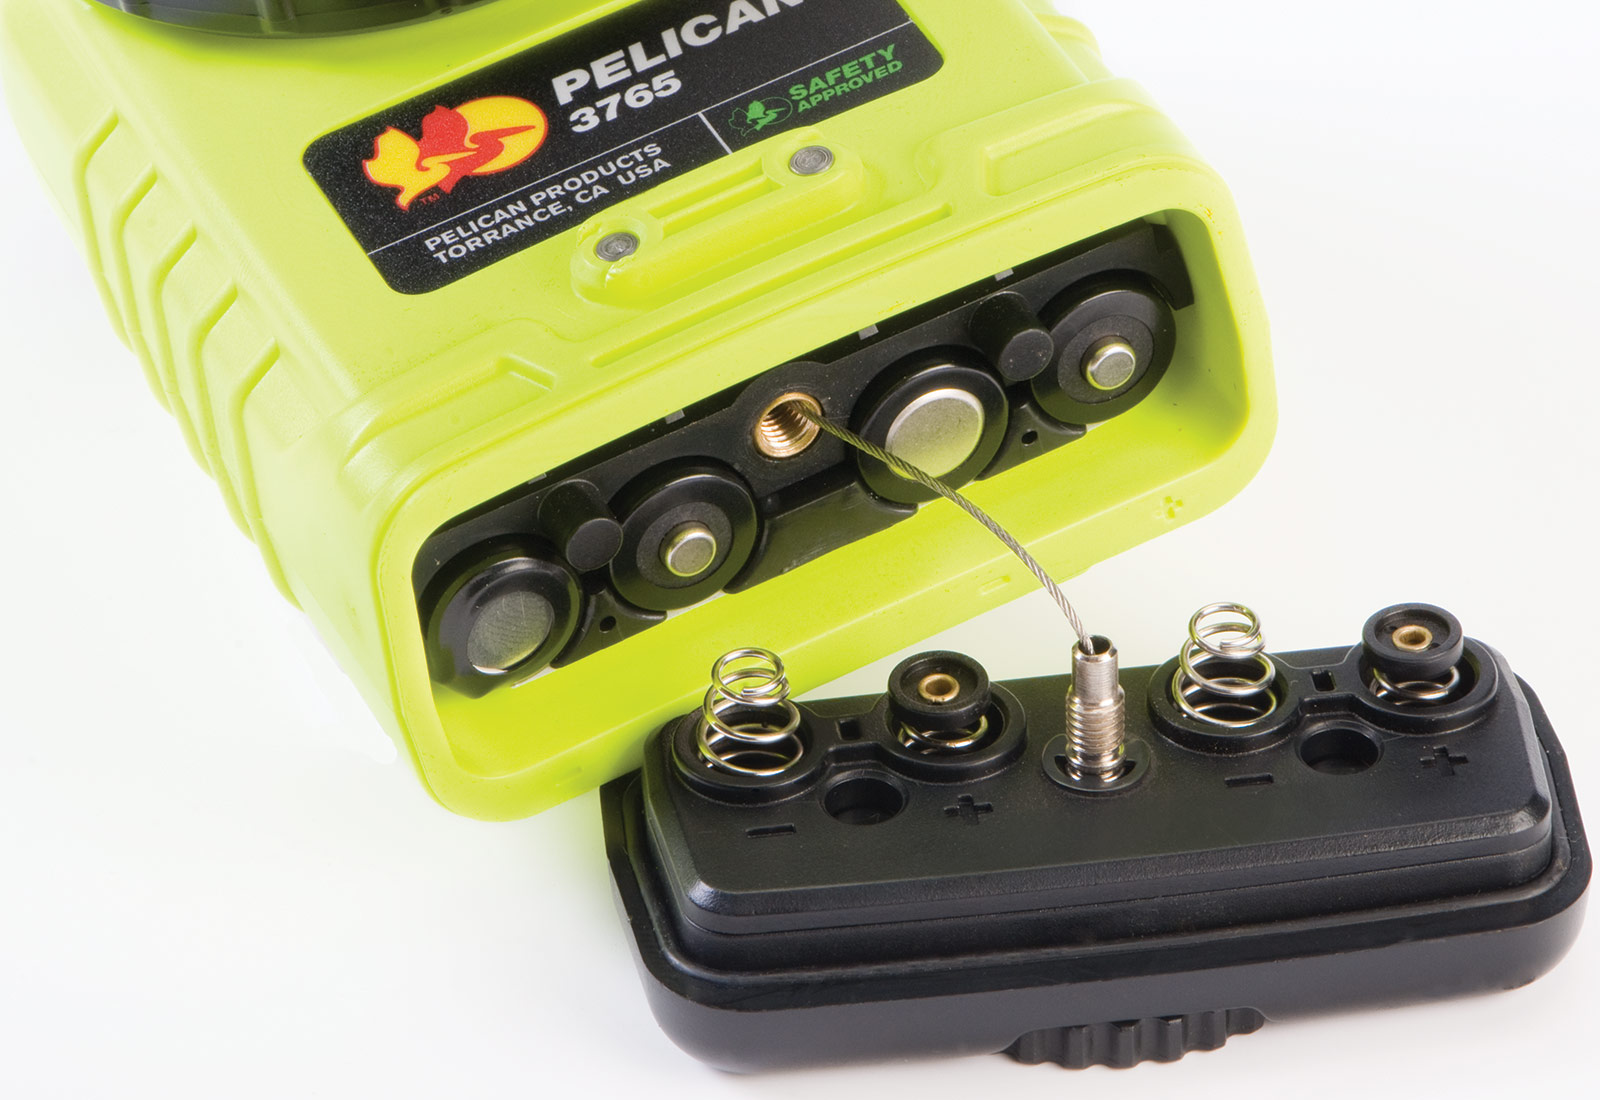 pelican 3765 yellow light battery chamber